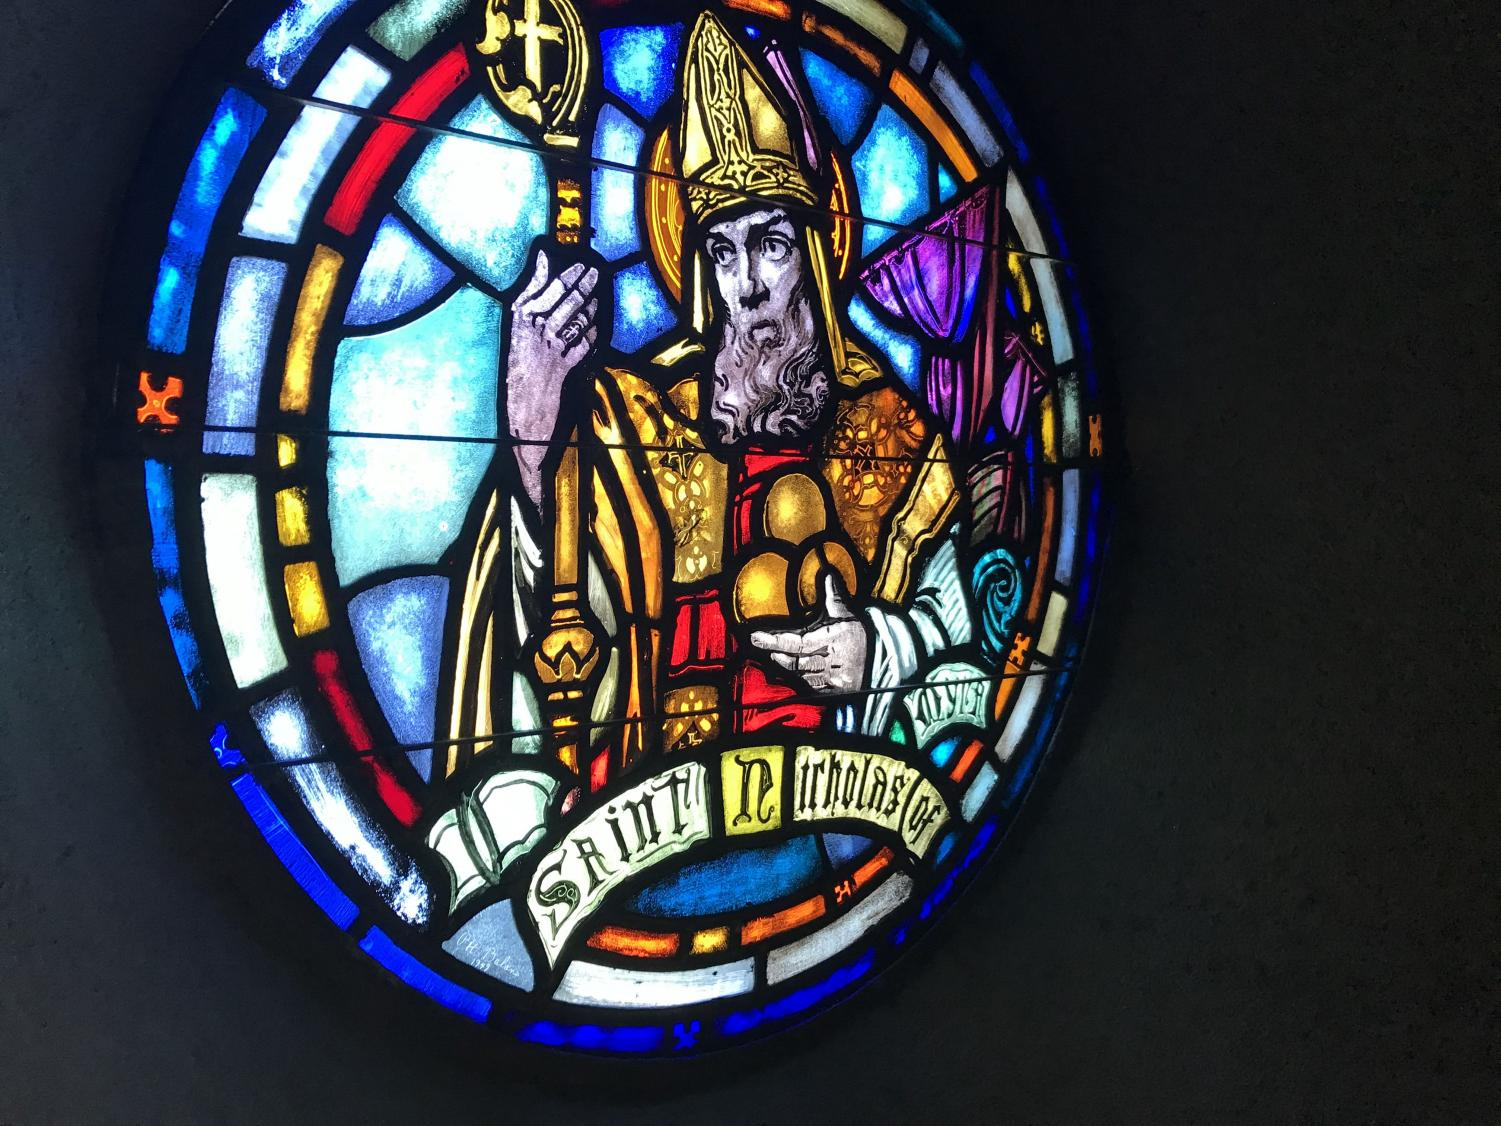 The stained glass windows were added in 1940. They were made by Balano Studios and funded by parish goers.